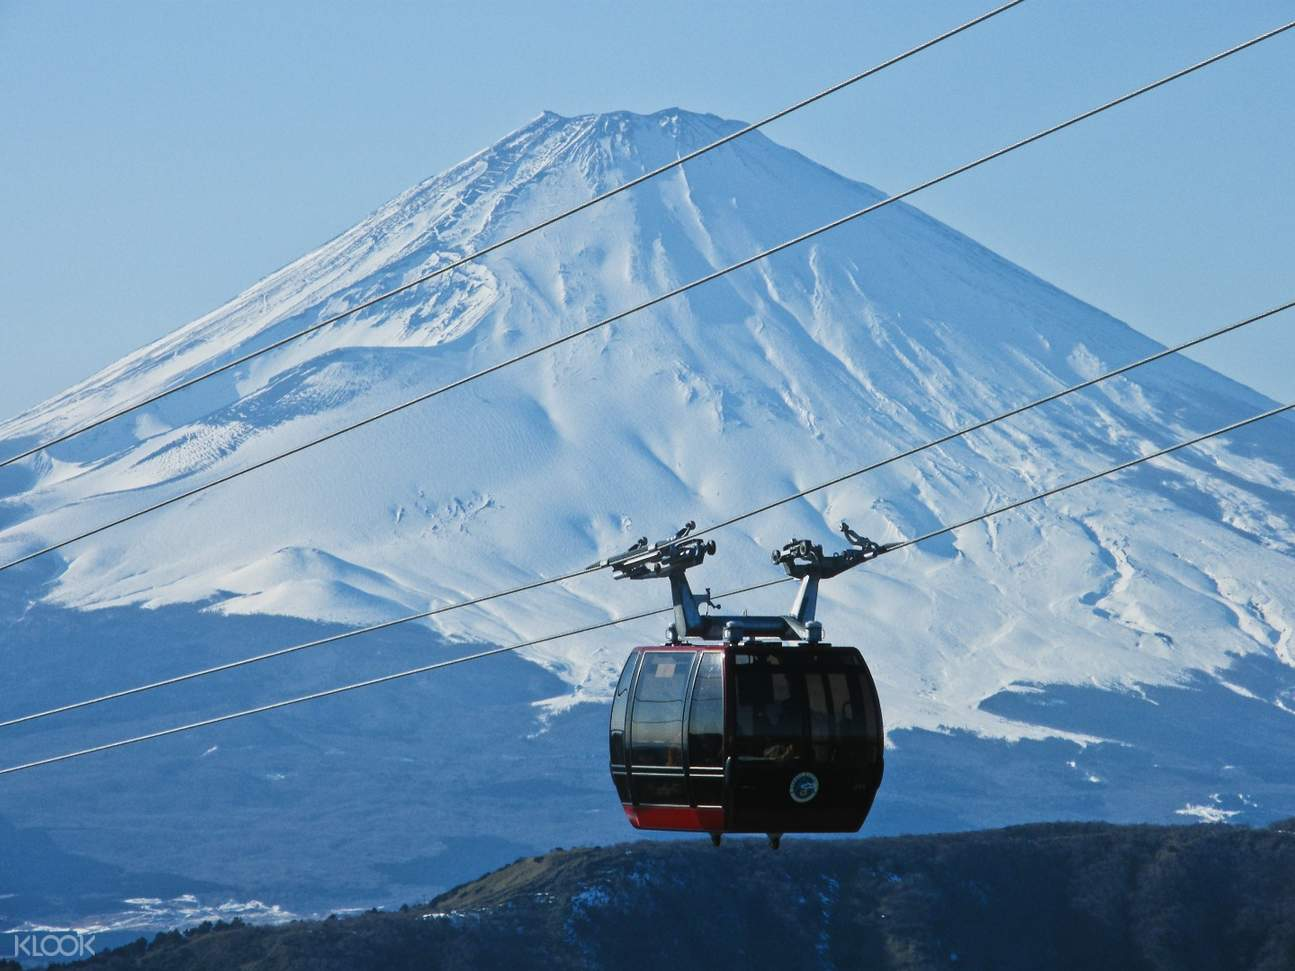 hakone day tour